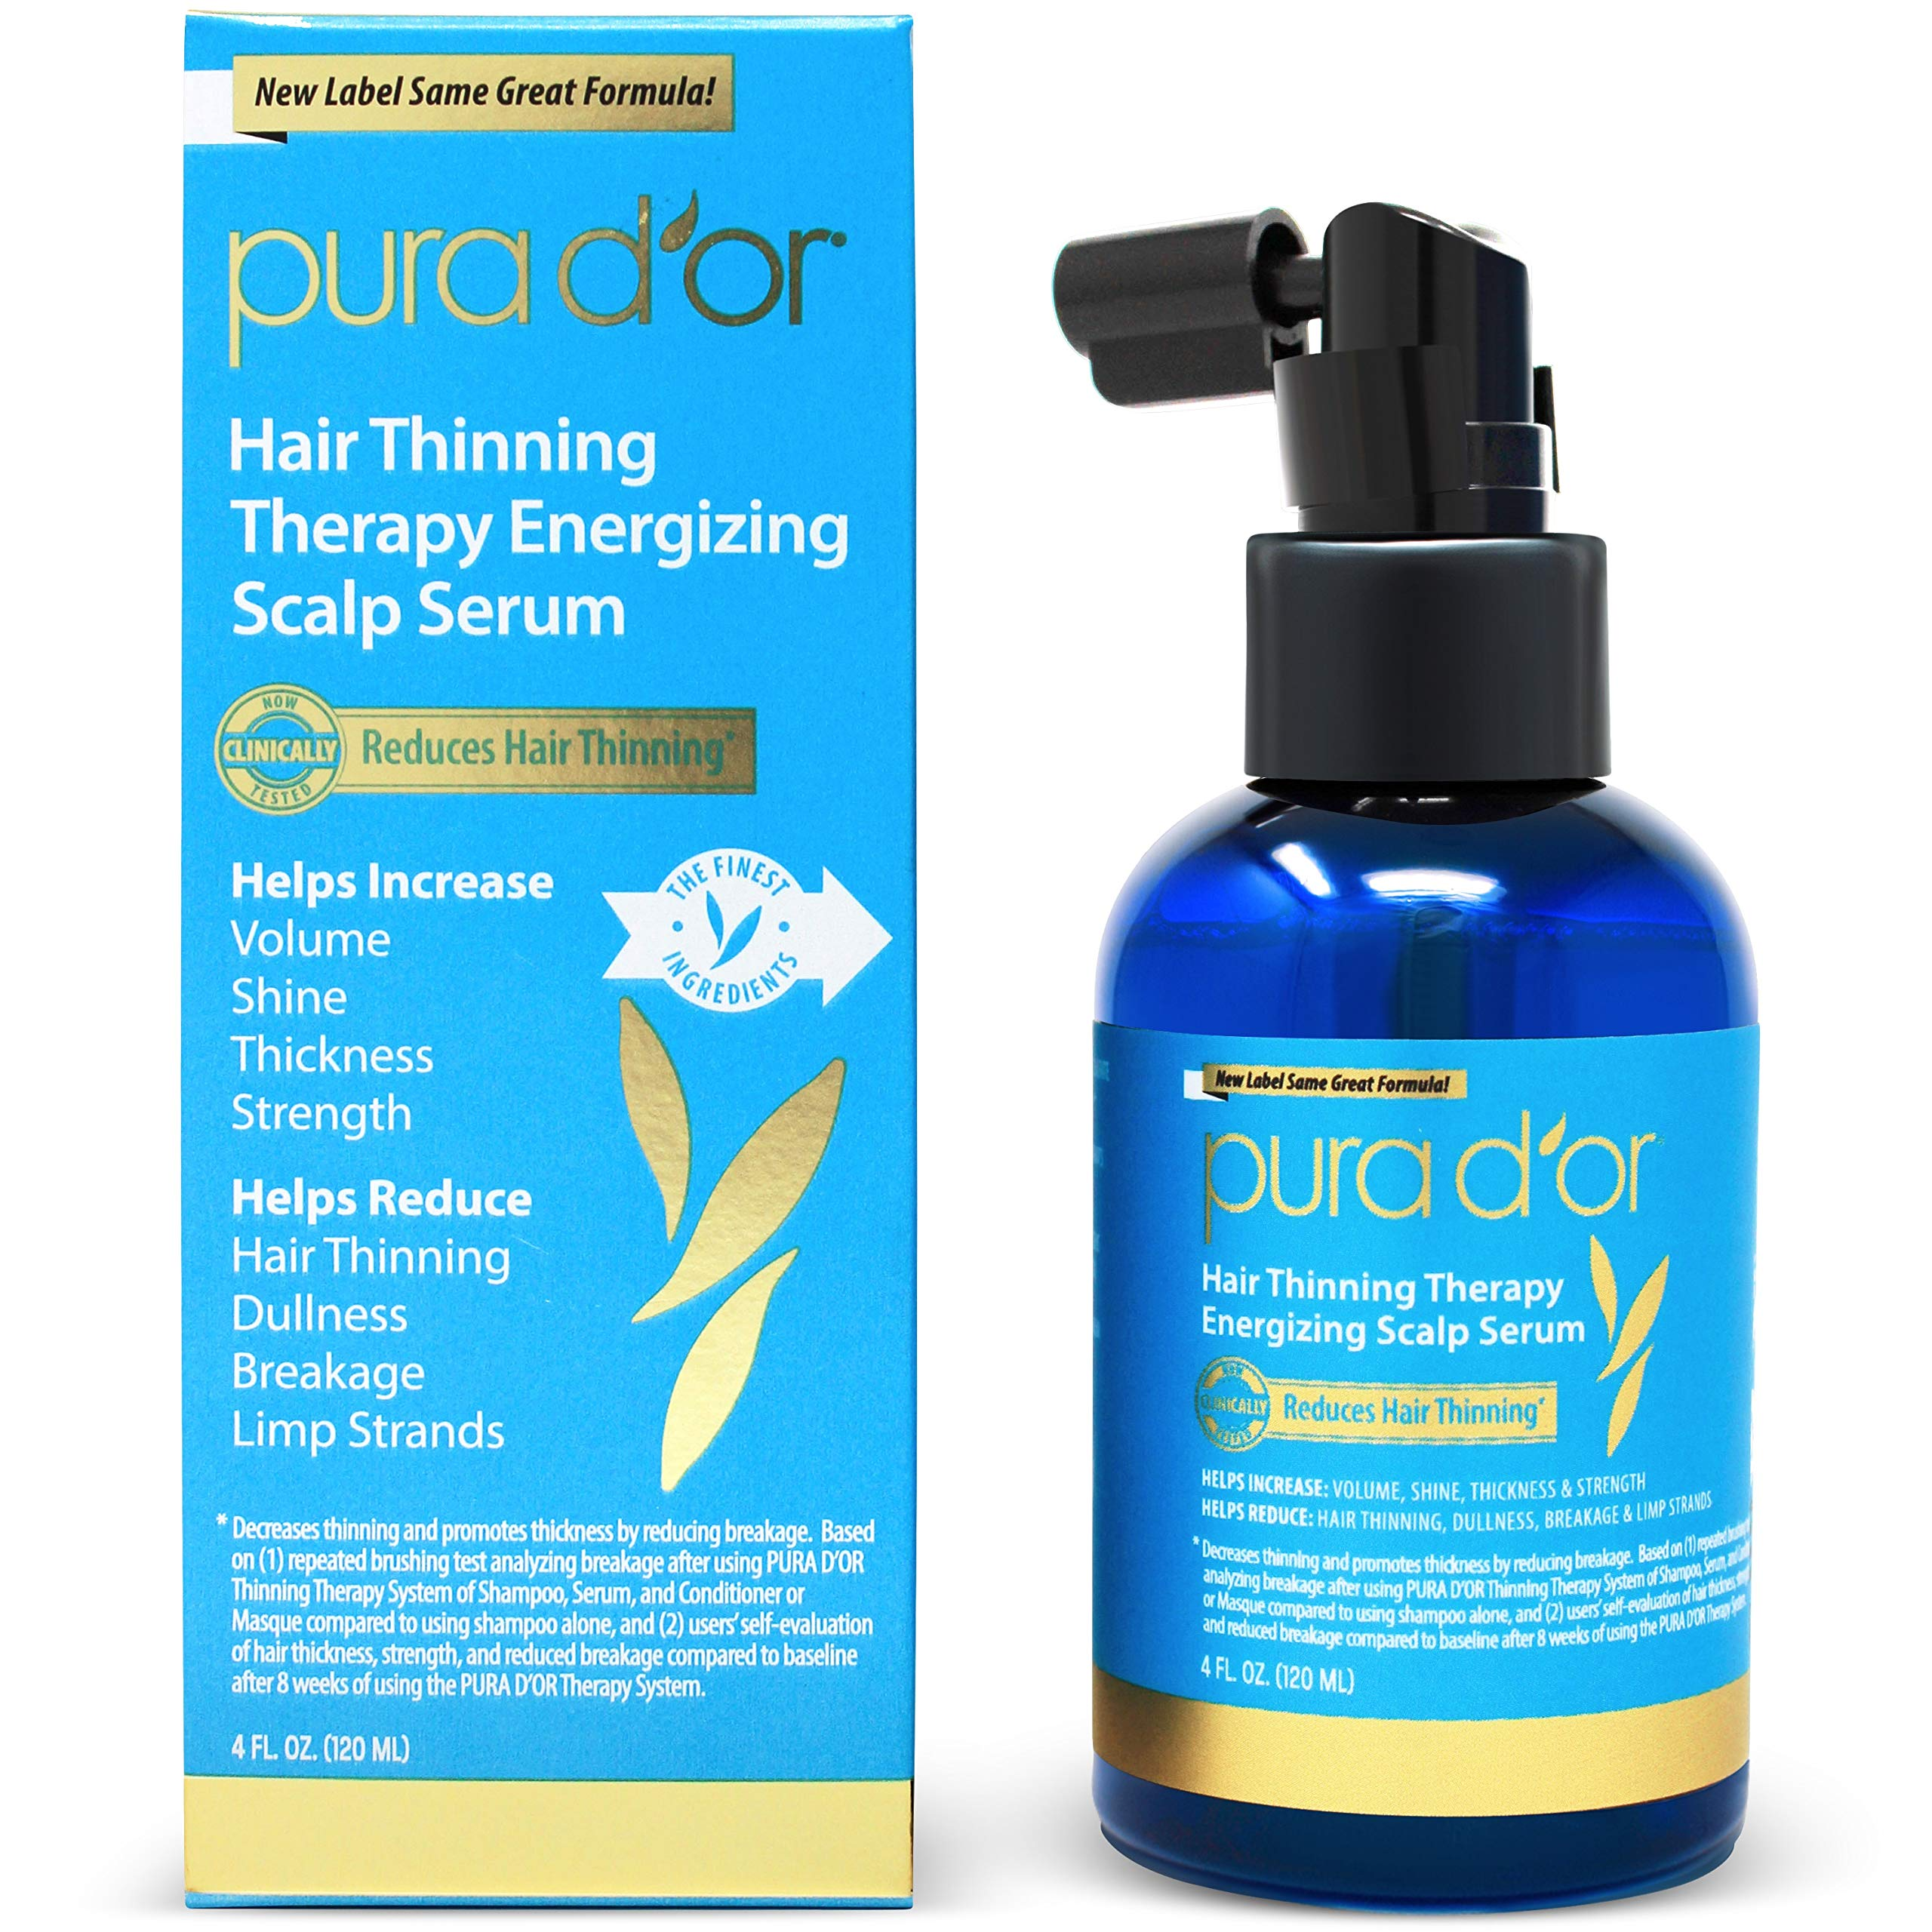 PURA D'OR Hair Thinning Therapy Energizing Scalp Serum Revitalizer (4oz) with Argan Oil, Biotin, Caffeine, Stem Cell, Catalase & DHT Blockers, All Hair Types, Men & Women (Packaging may vary) by PURA D'OR